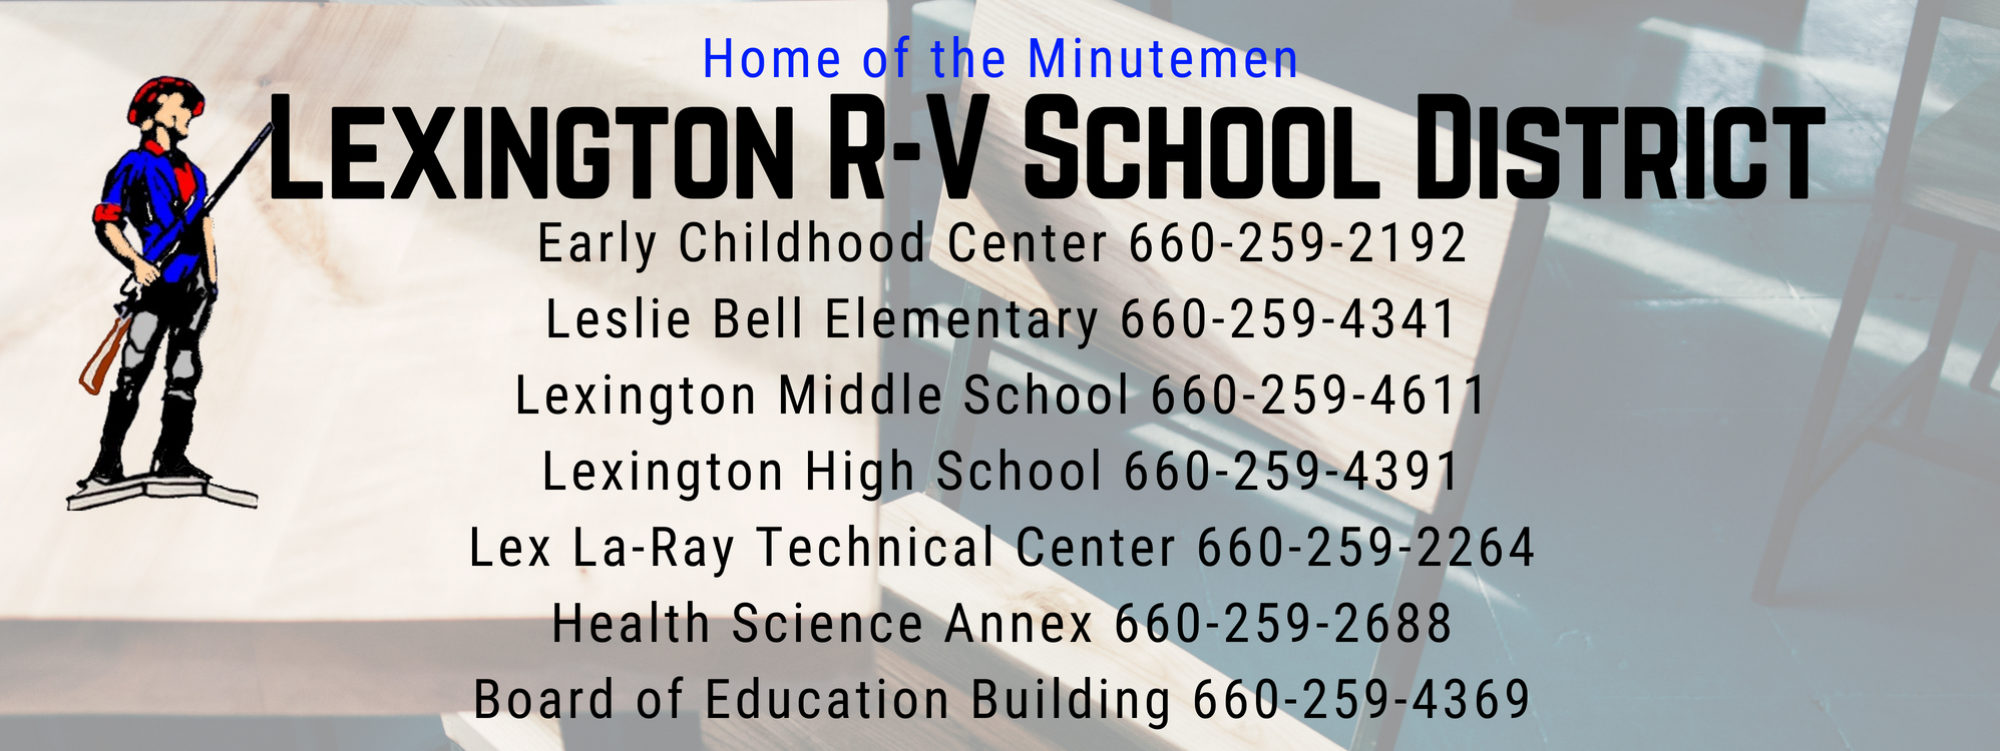 Lexington R-V School District